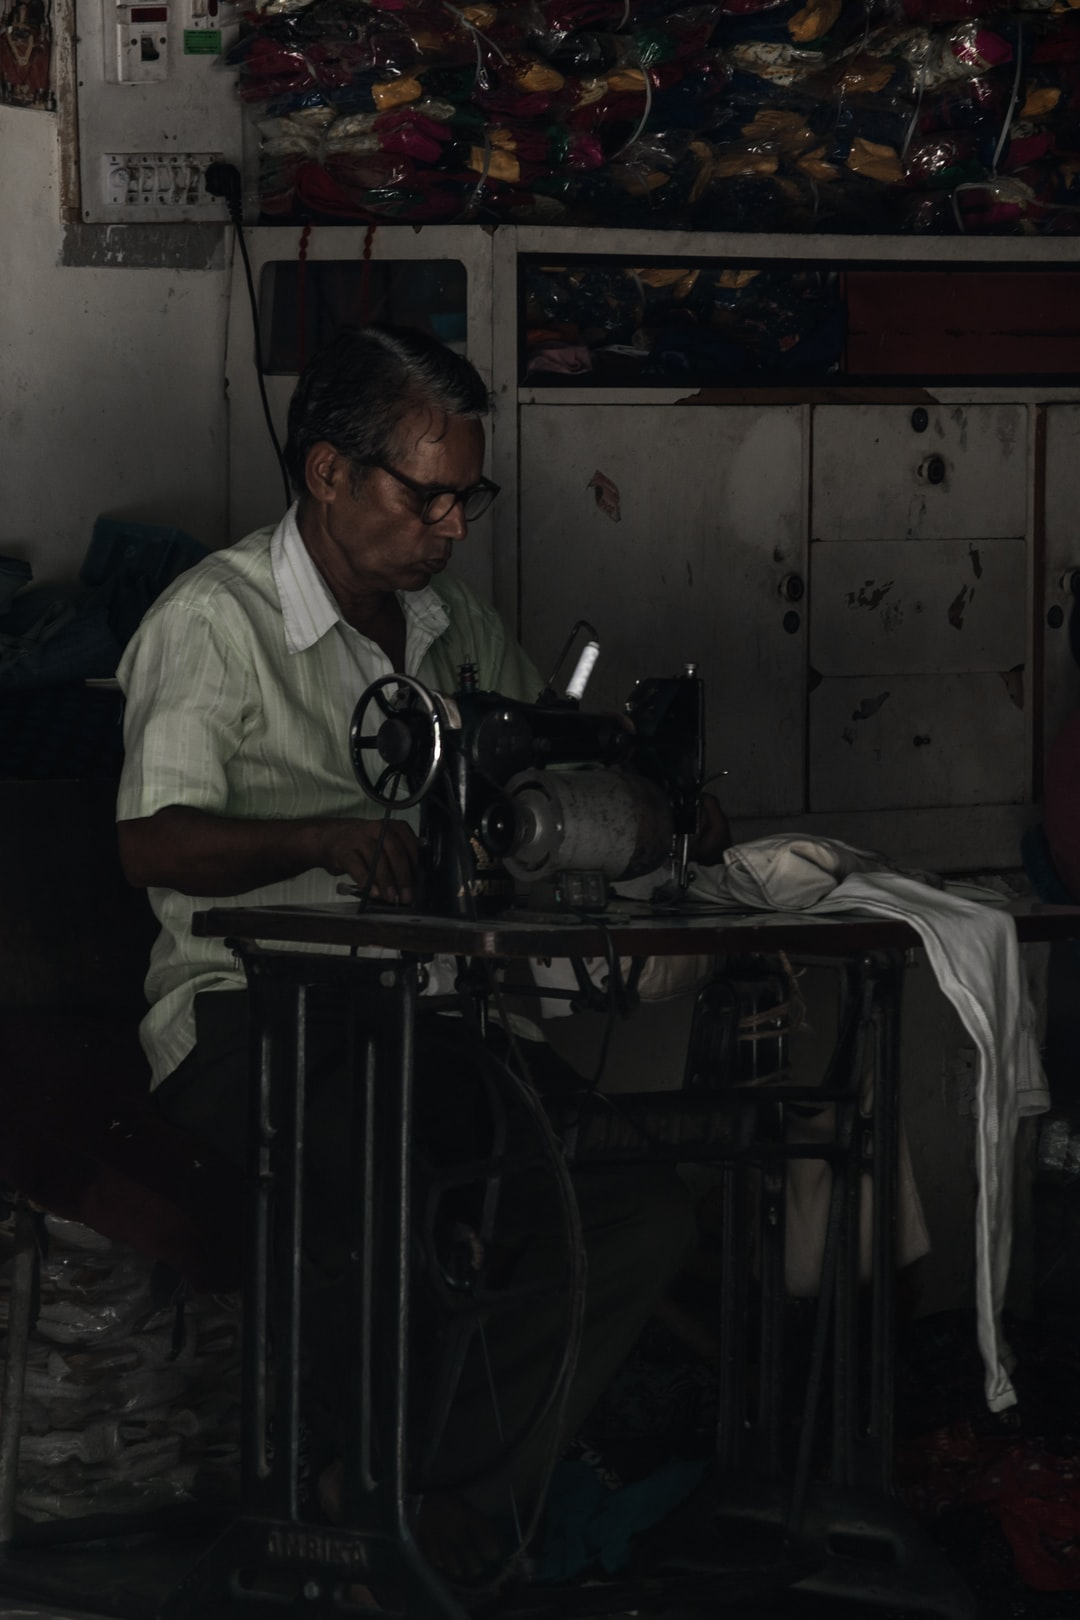 Man sewing clothes